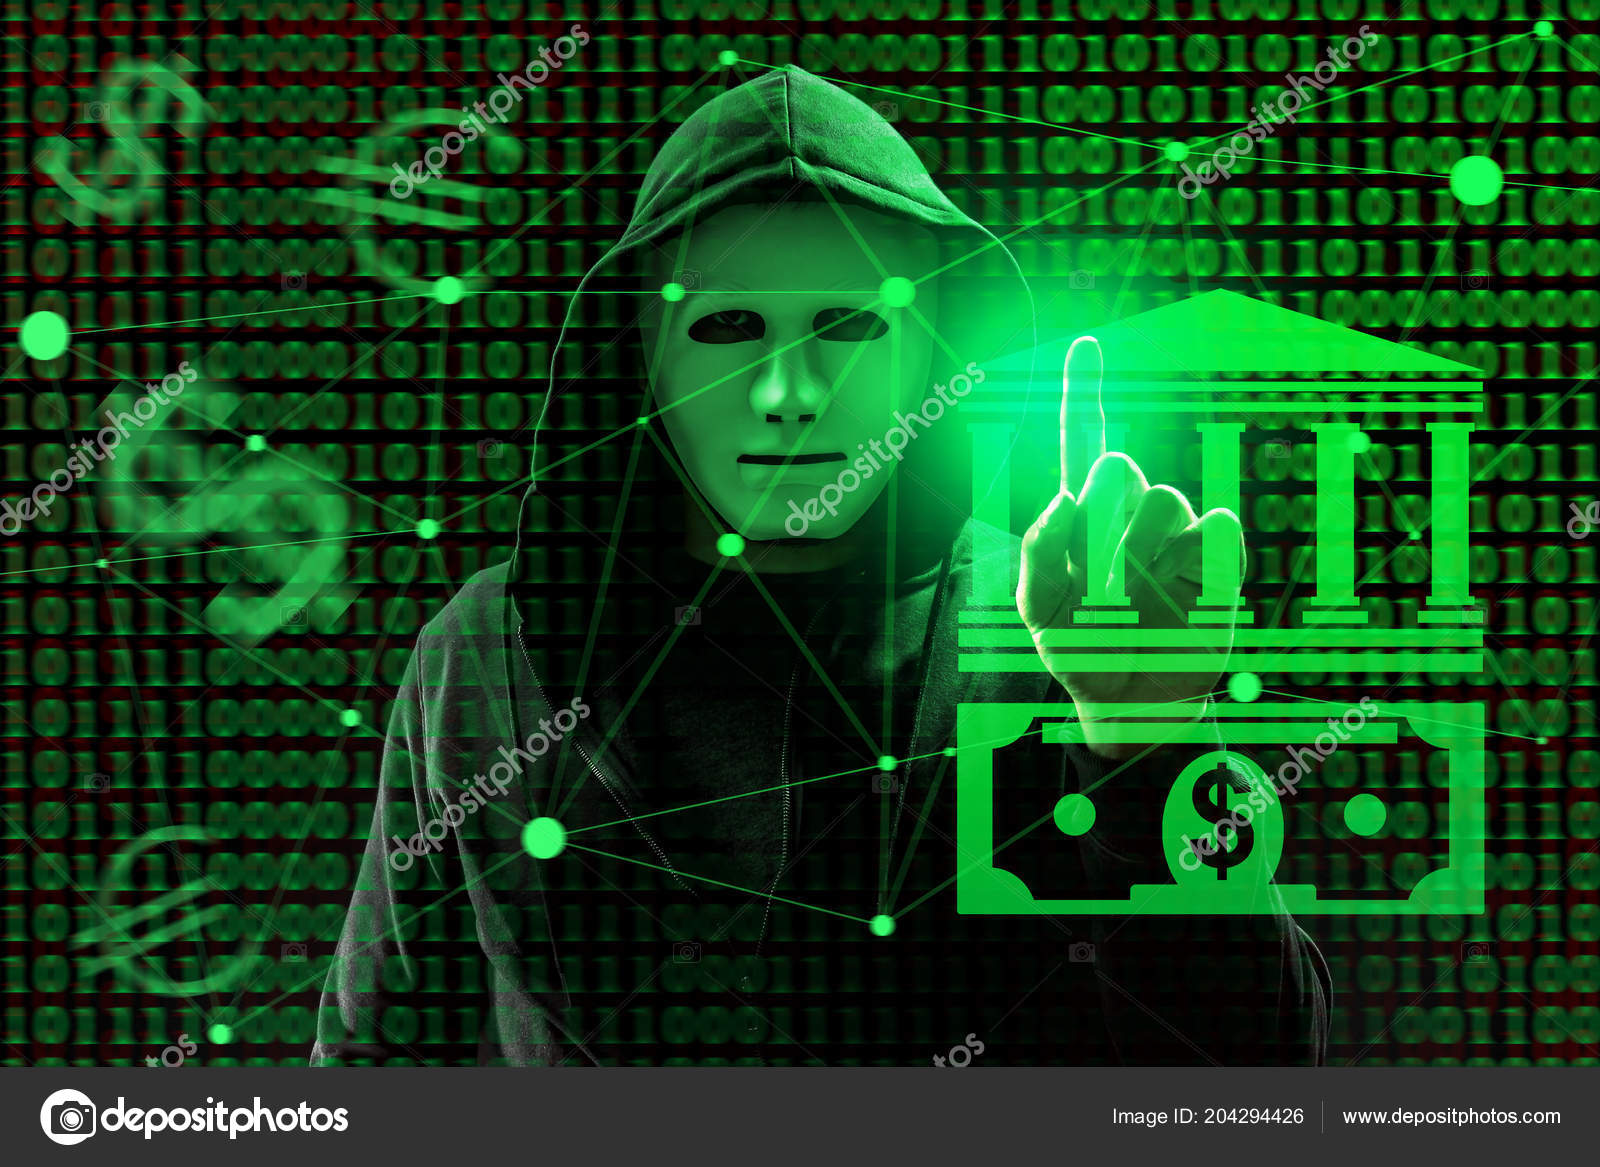 threats of a cyber attack Cybersecurity involves preventing, detecting, and responding to cyberattacks that can have wide ranging effects on the individual, organizations, the community, and at the national level.